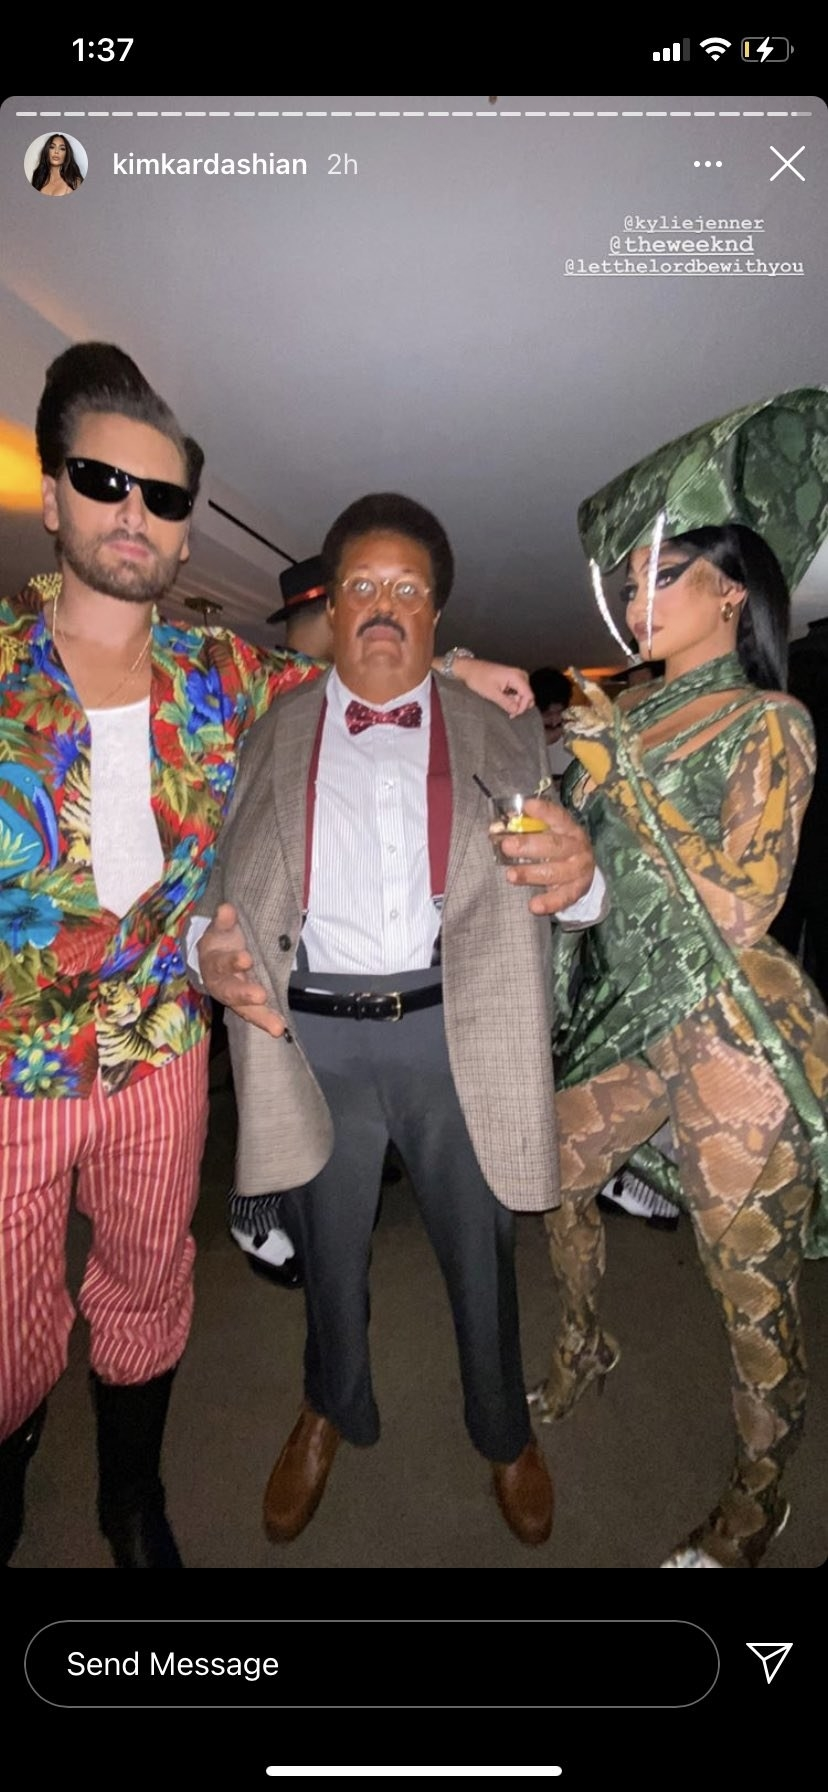 Scott Disick dressed as Ace Ventura, The Weeknd dressed as the Nutty Professor, and Kylie Jenner dressed as a sexy snake pose for cameras